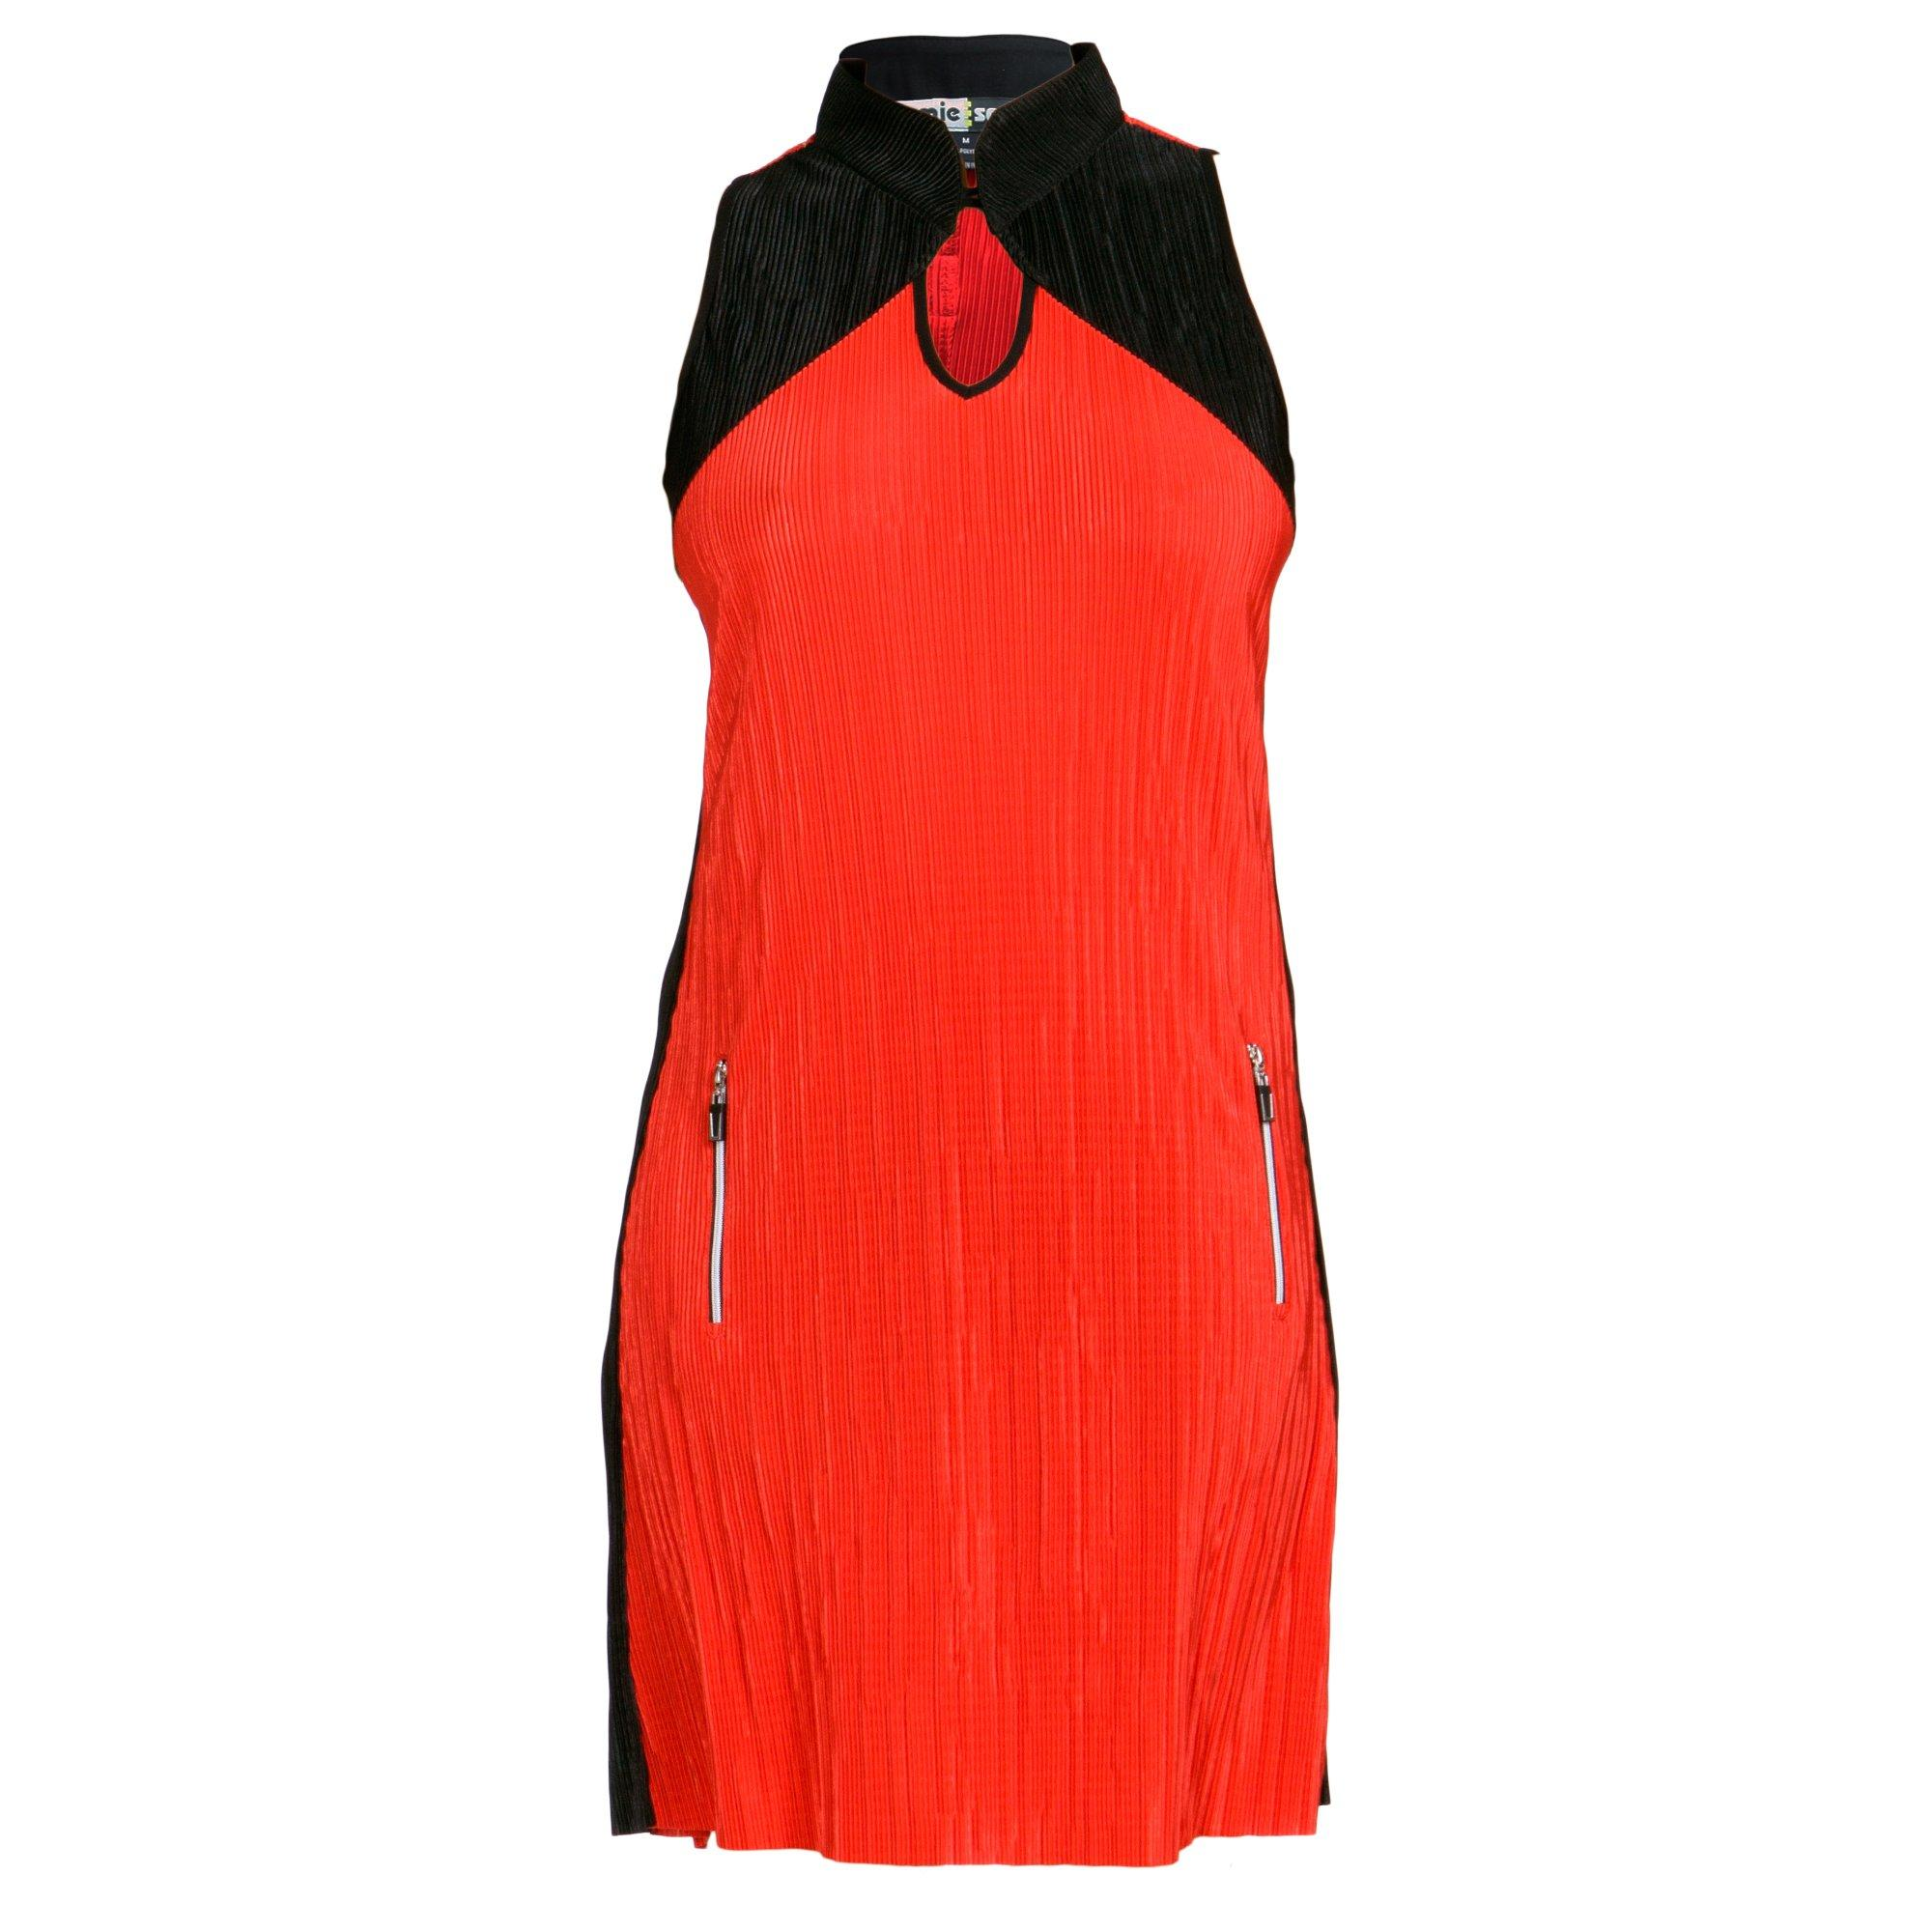 Women's Crunch Sleeveless Dress